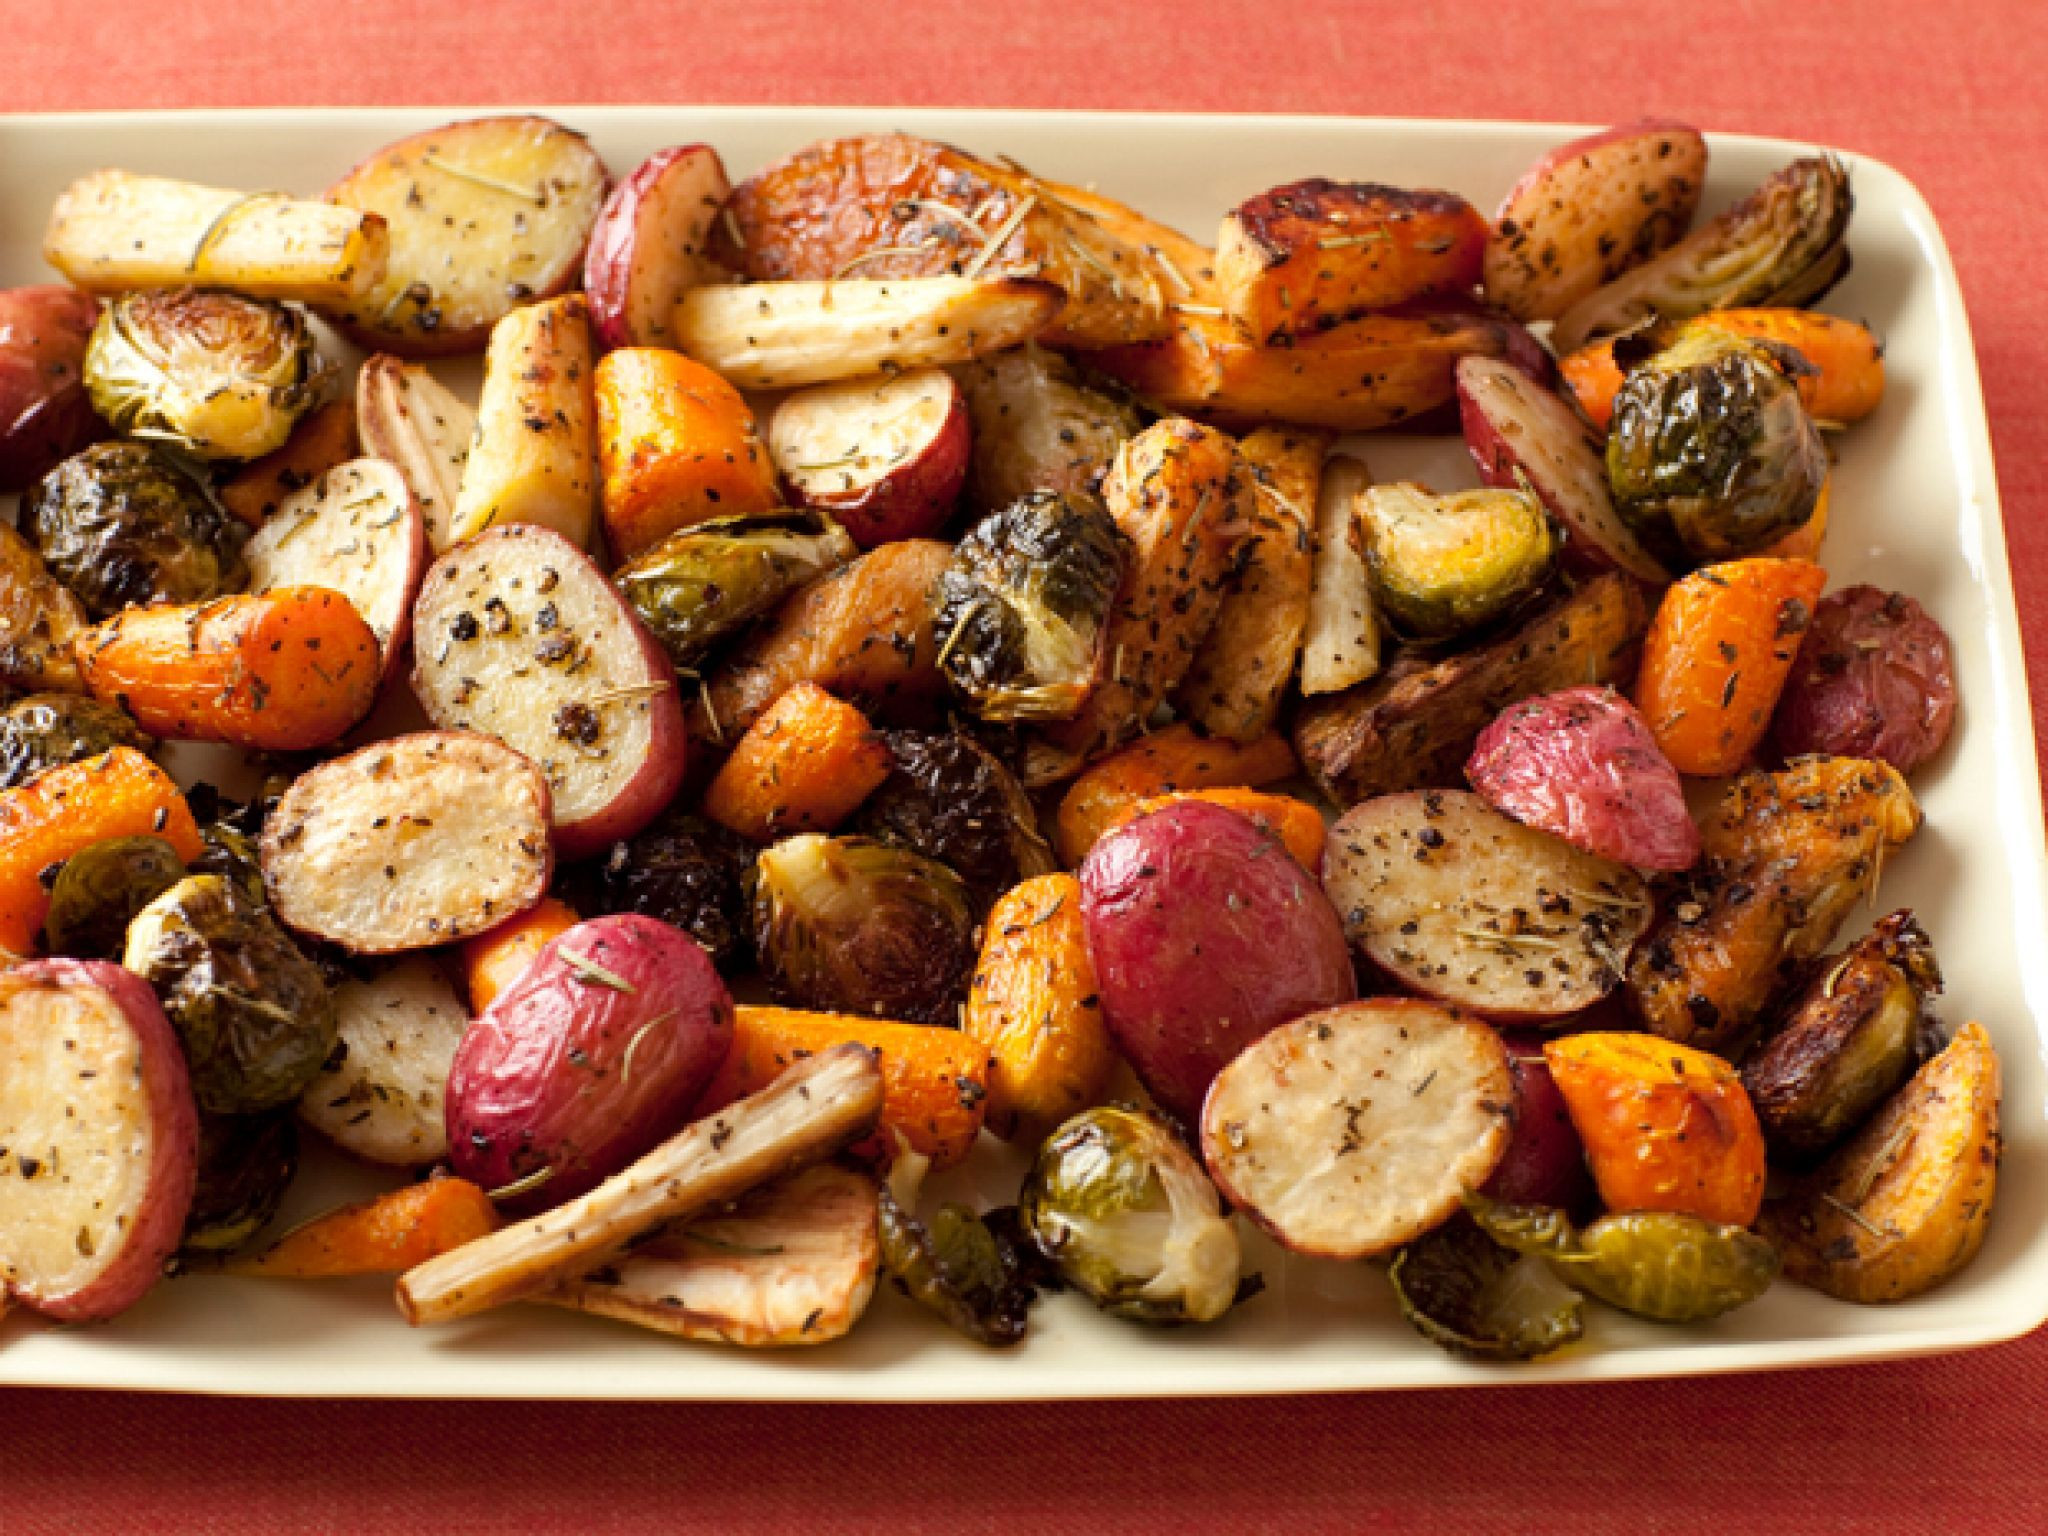 Christmas Dinner Side Dishes Food Network  100 Classic Thanksgiving Side Dish Recipes